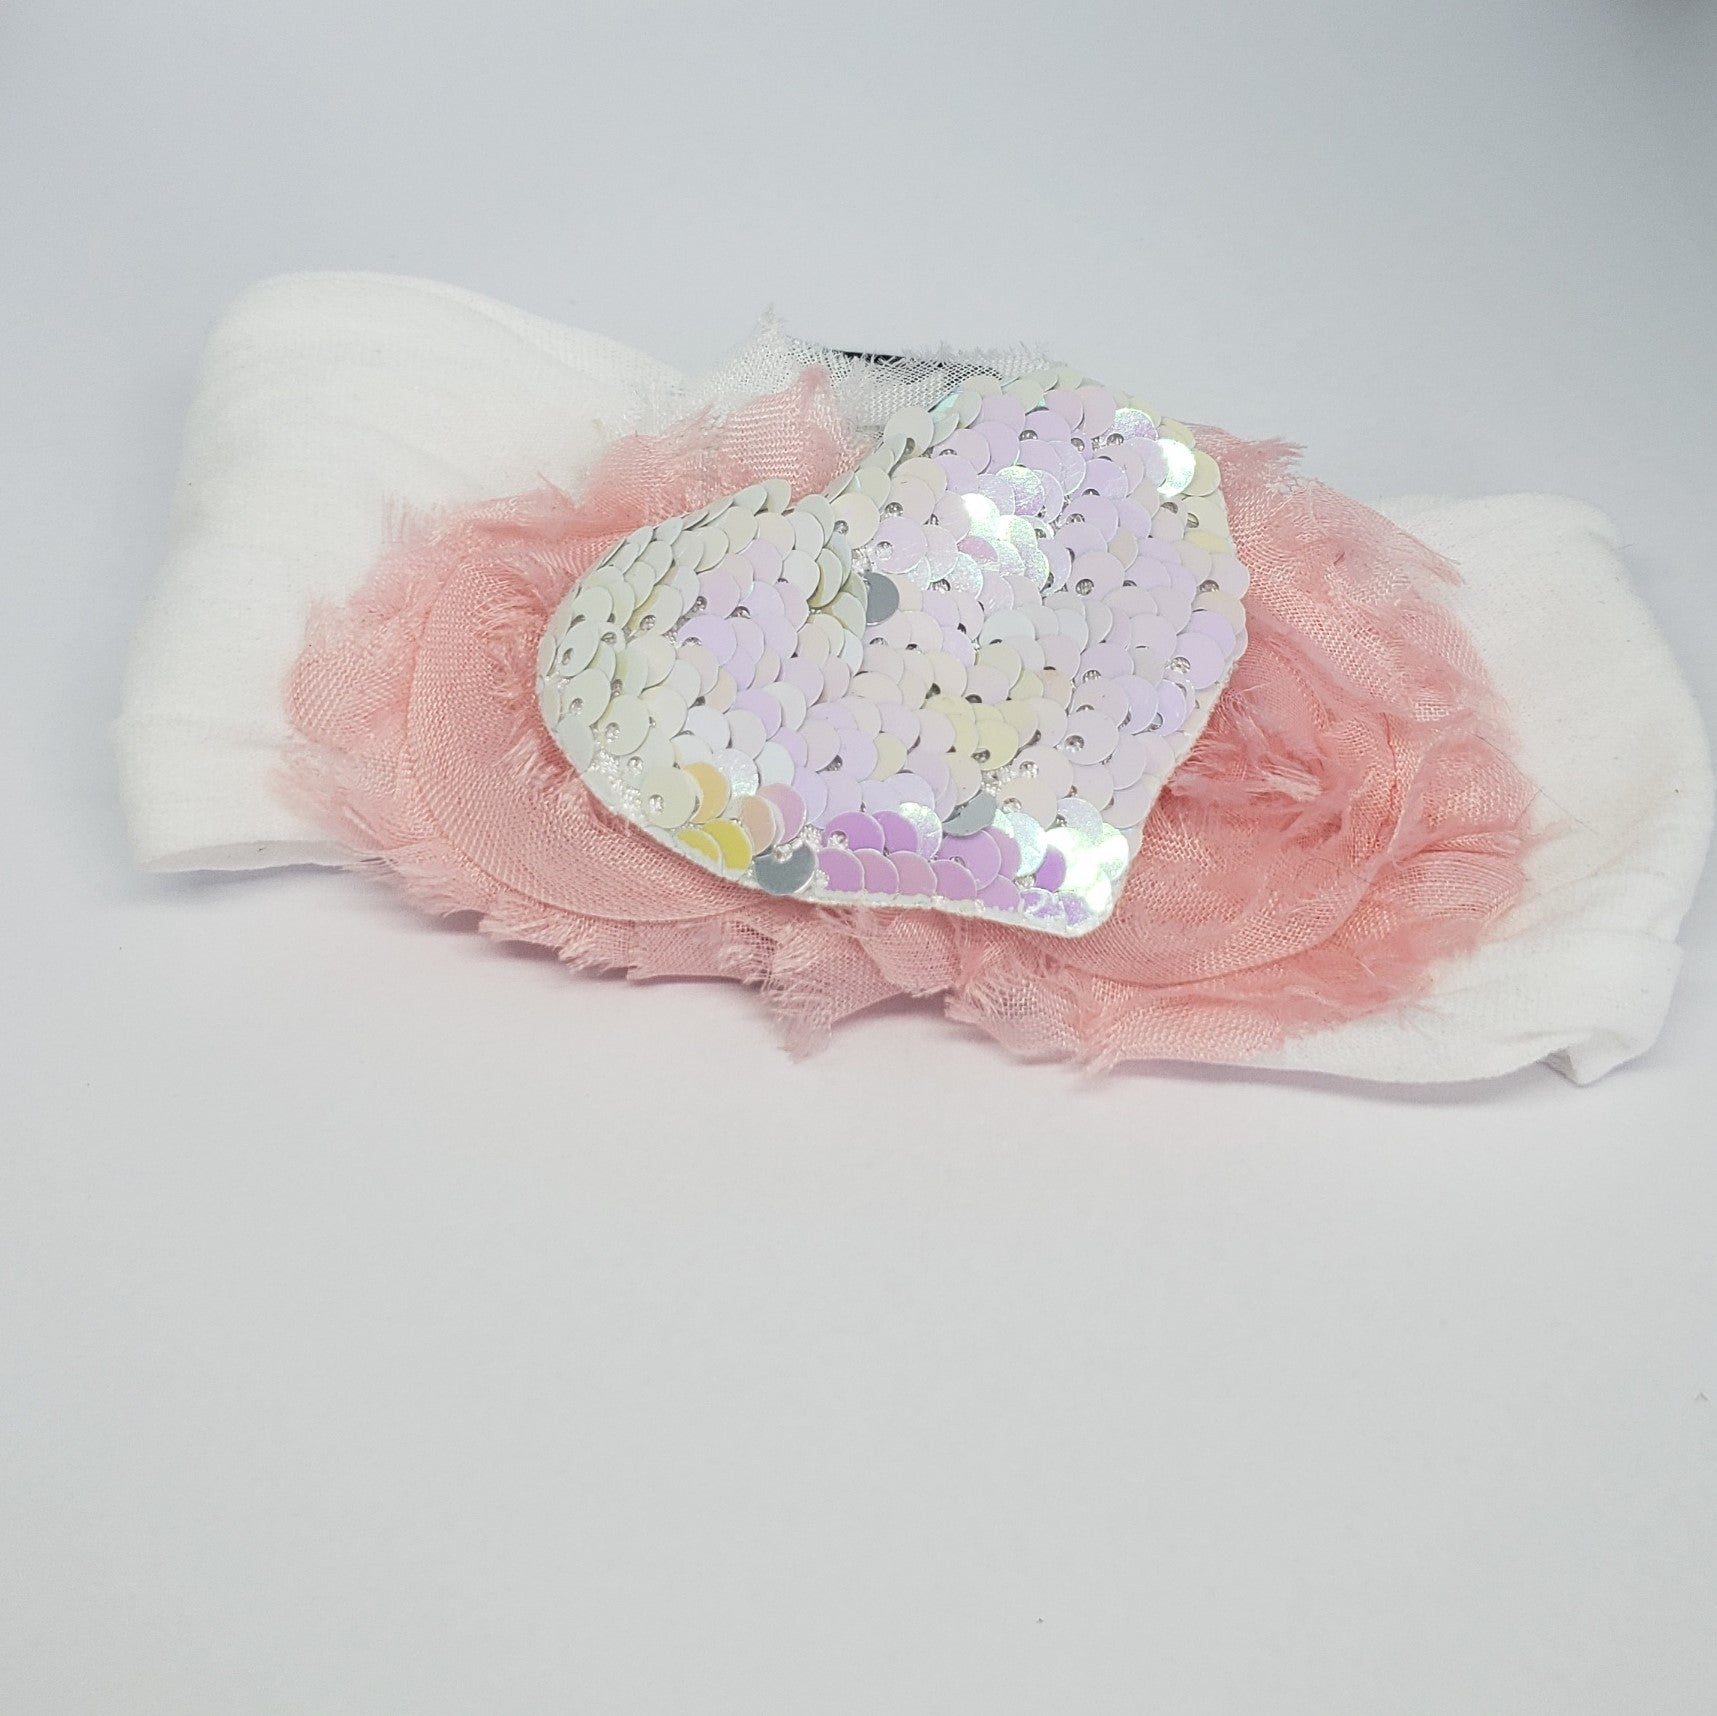 N-Zala Girly Heart Baby Headband - Houzz of DVA Boutique